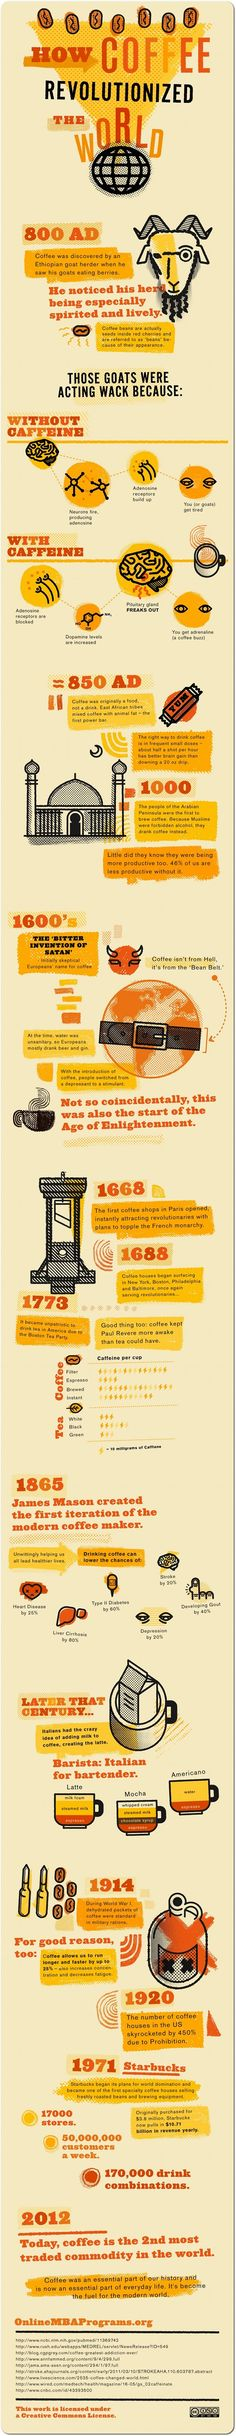 Check out how coffee revolutionised the world!